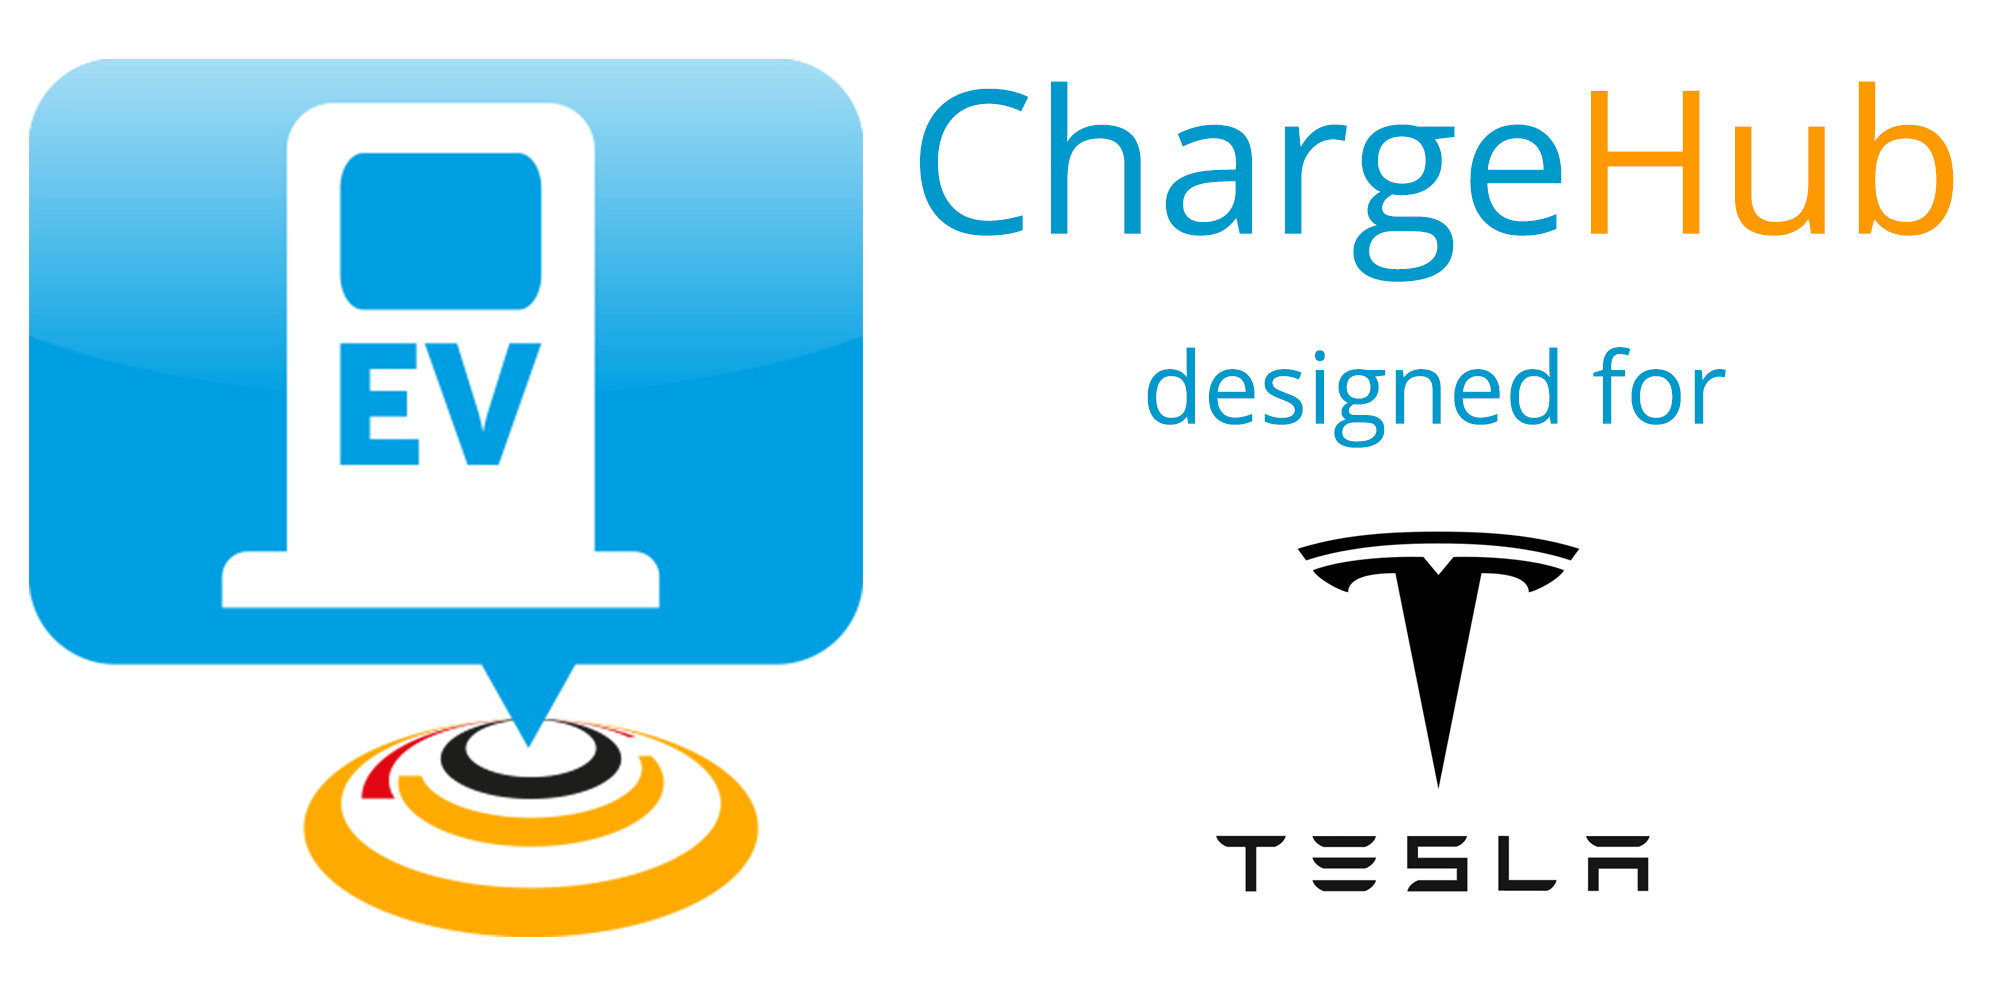 Find every public charging stations for electric cars